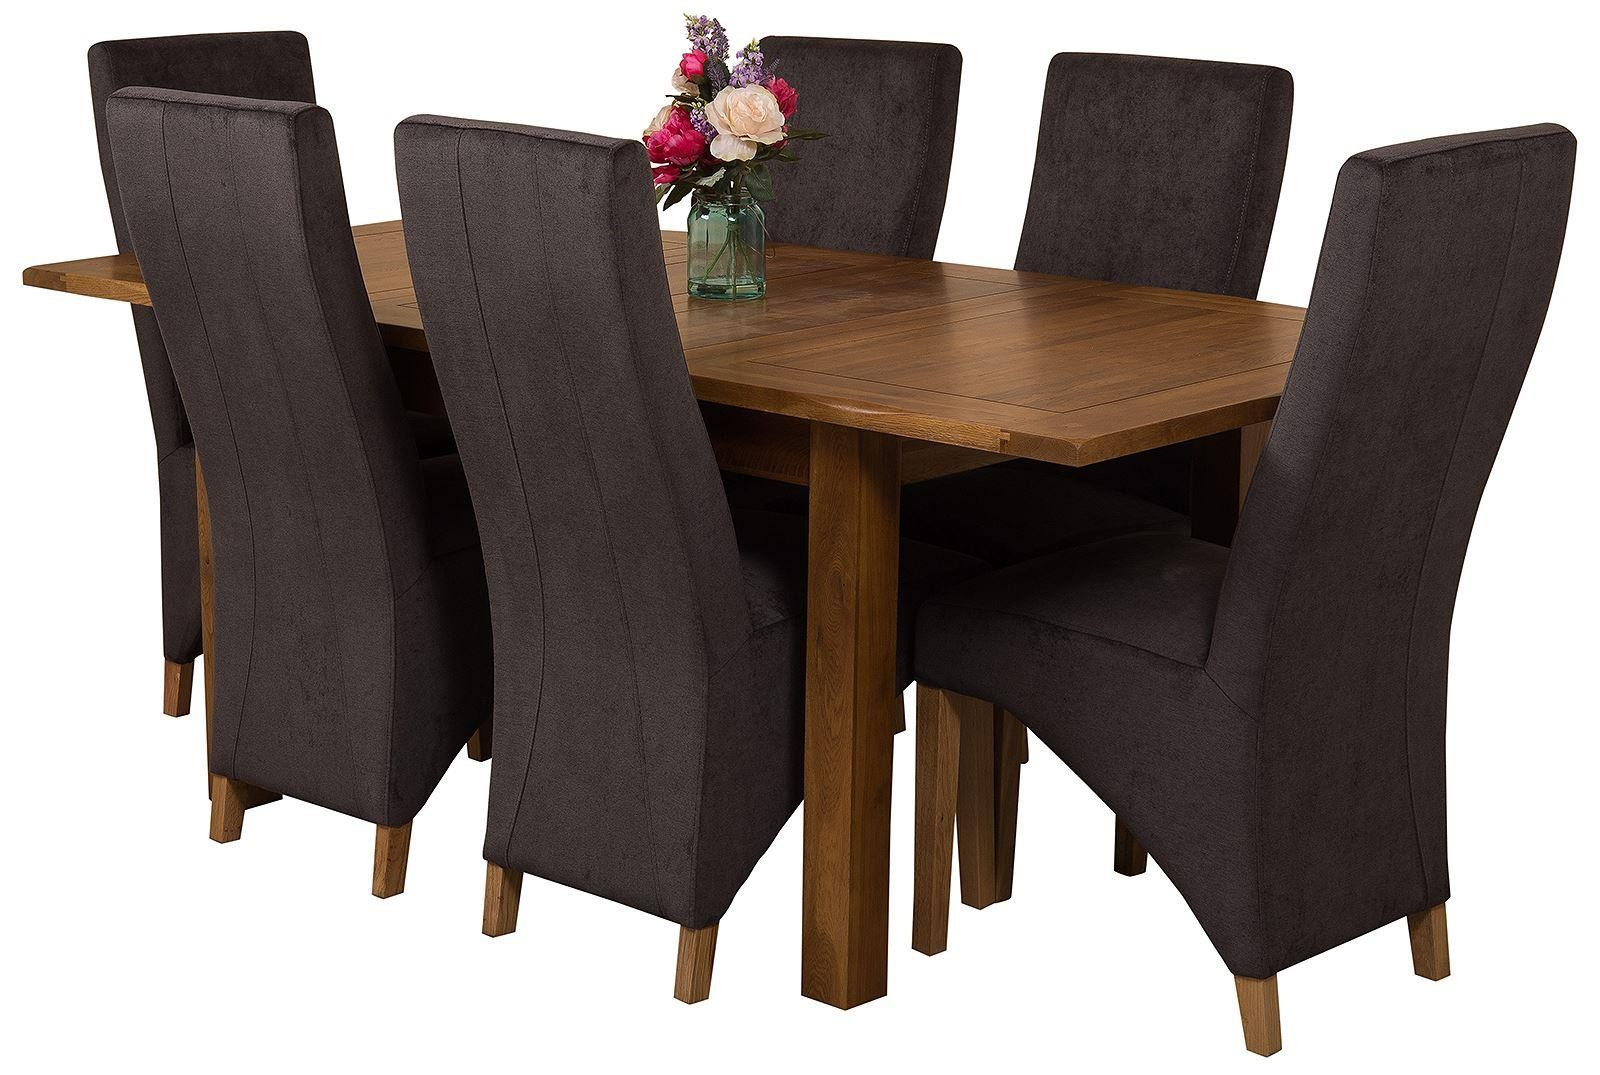 Cotswold Rustic Solid Oak 132cm-198cm Extending Farmhouse Dining Table with 6 Lola Dining Chairs [Black Fabric]